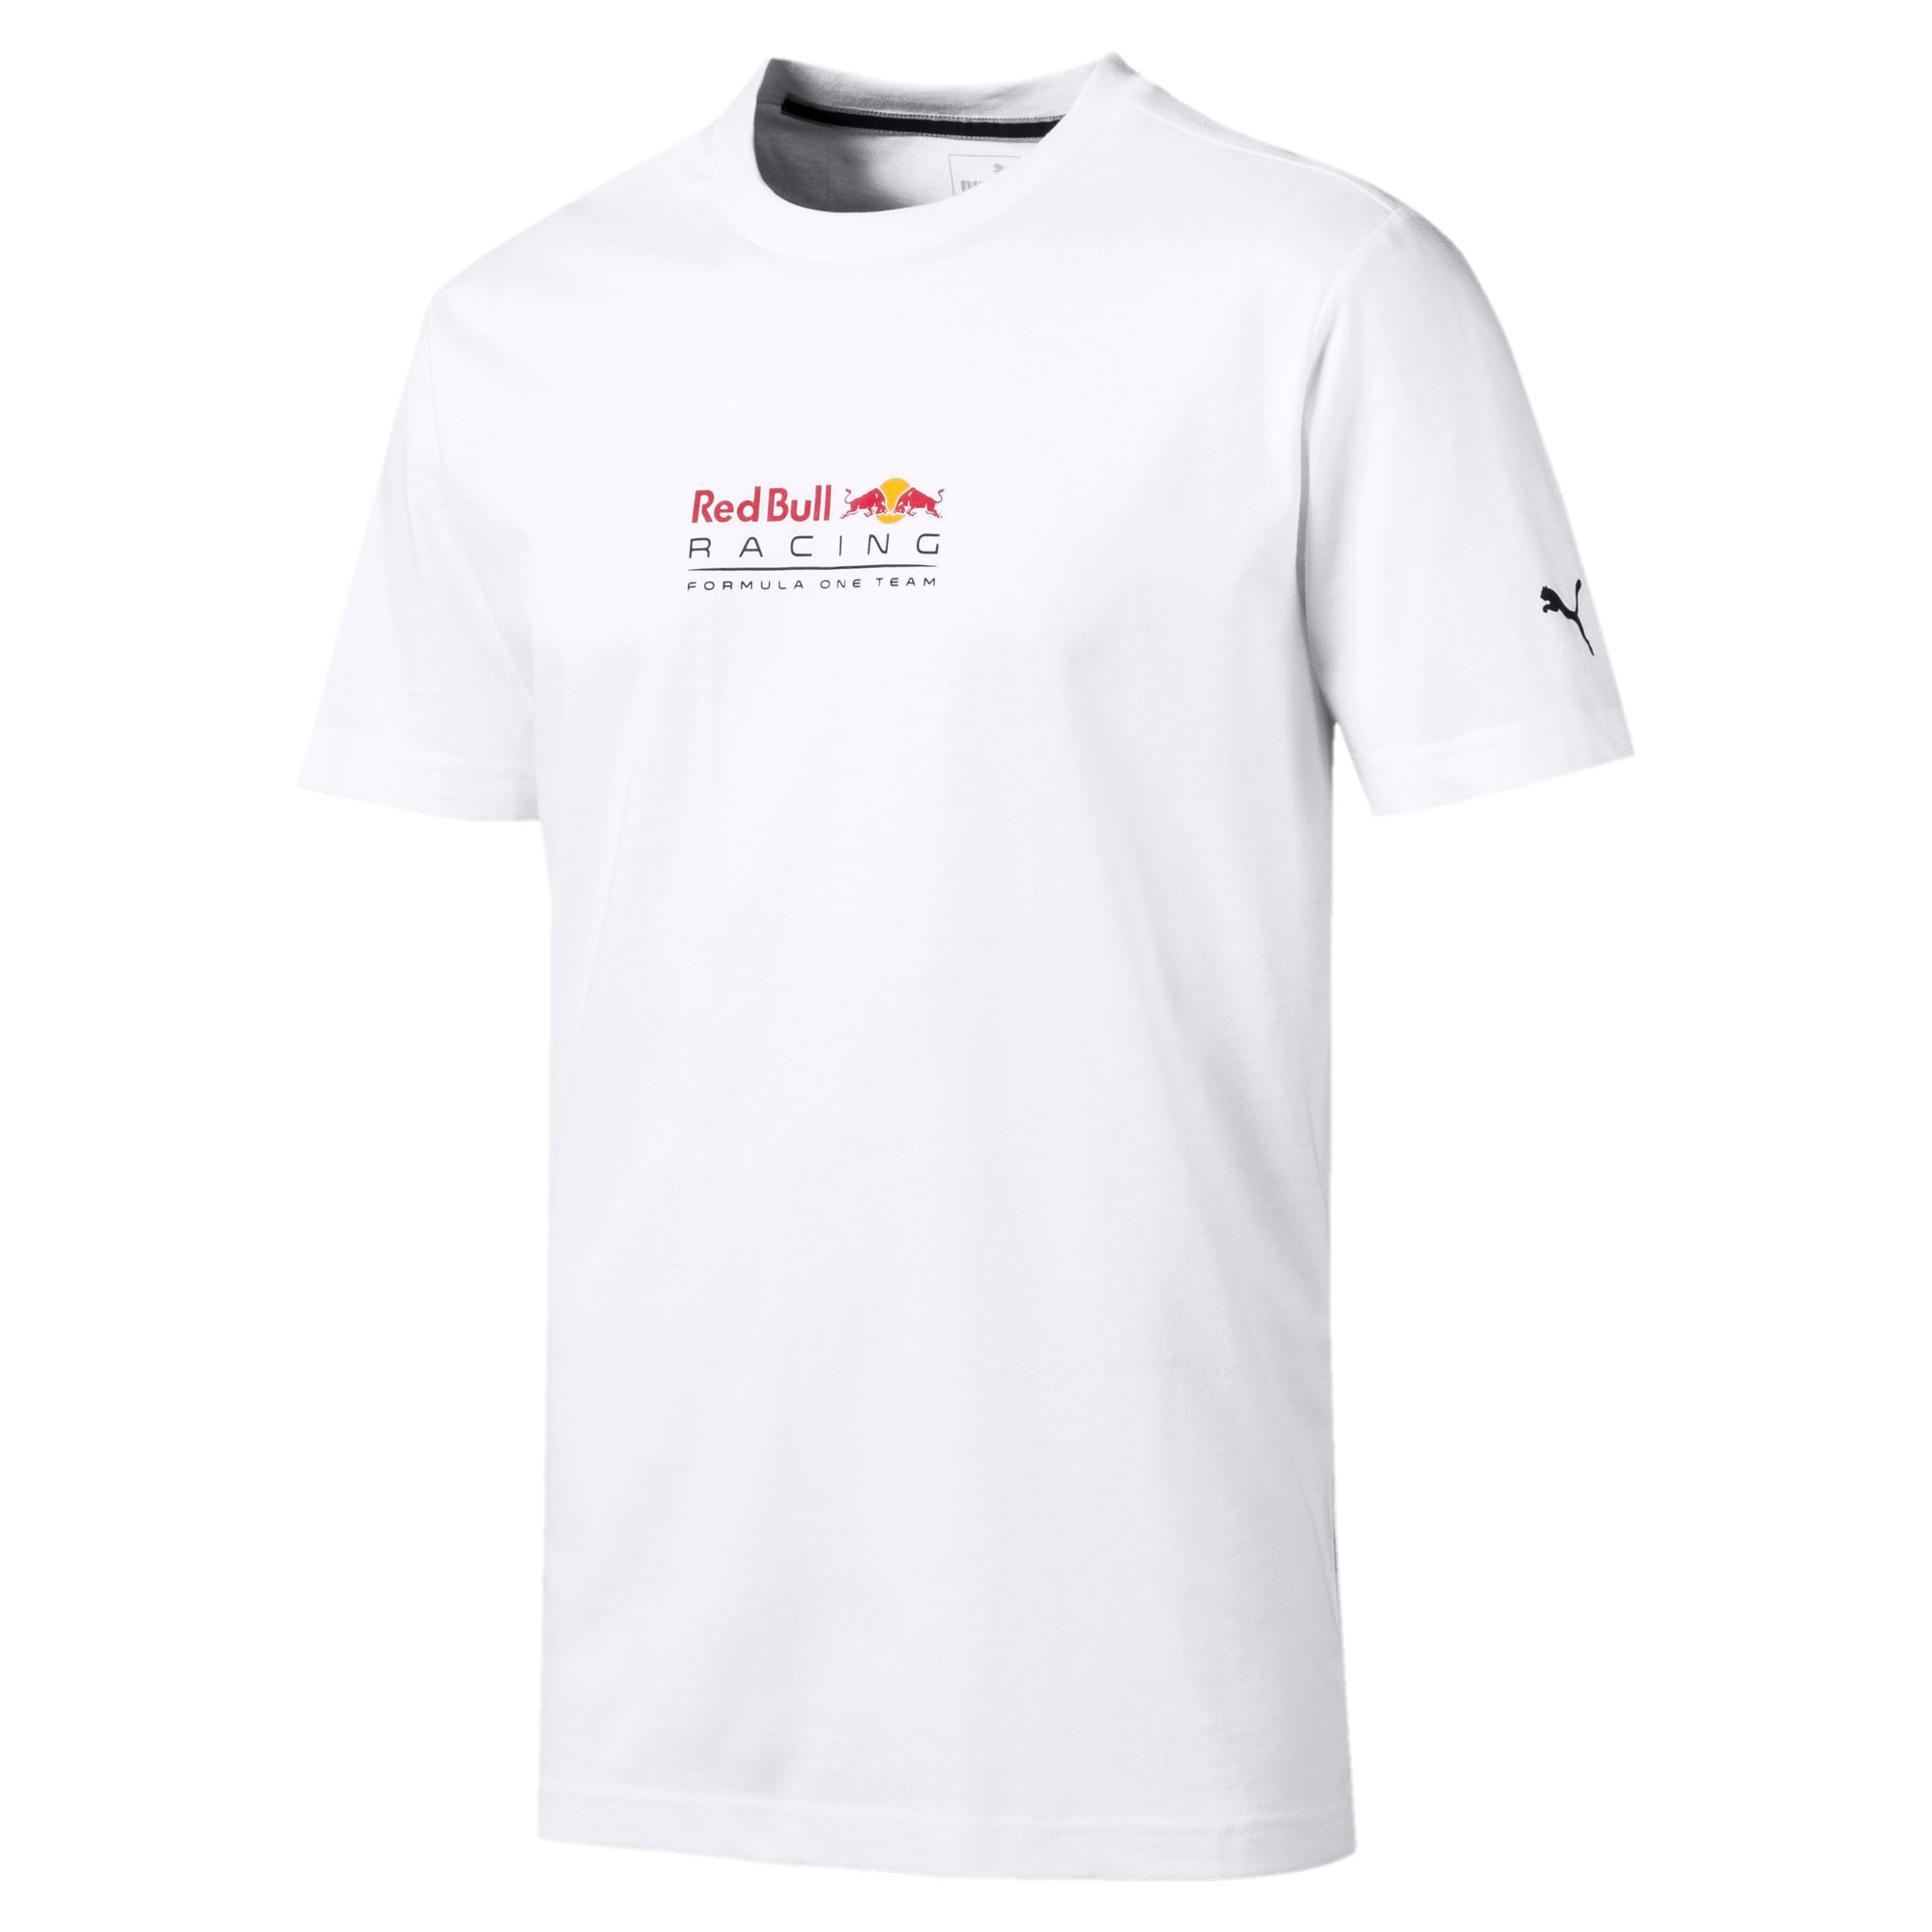 Thumbnail 1 of Red Bull Racing Dynamic Bull Men's Tee, Puma White, medium